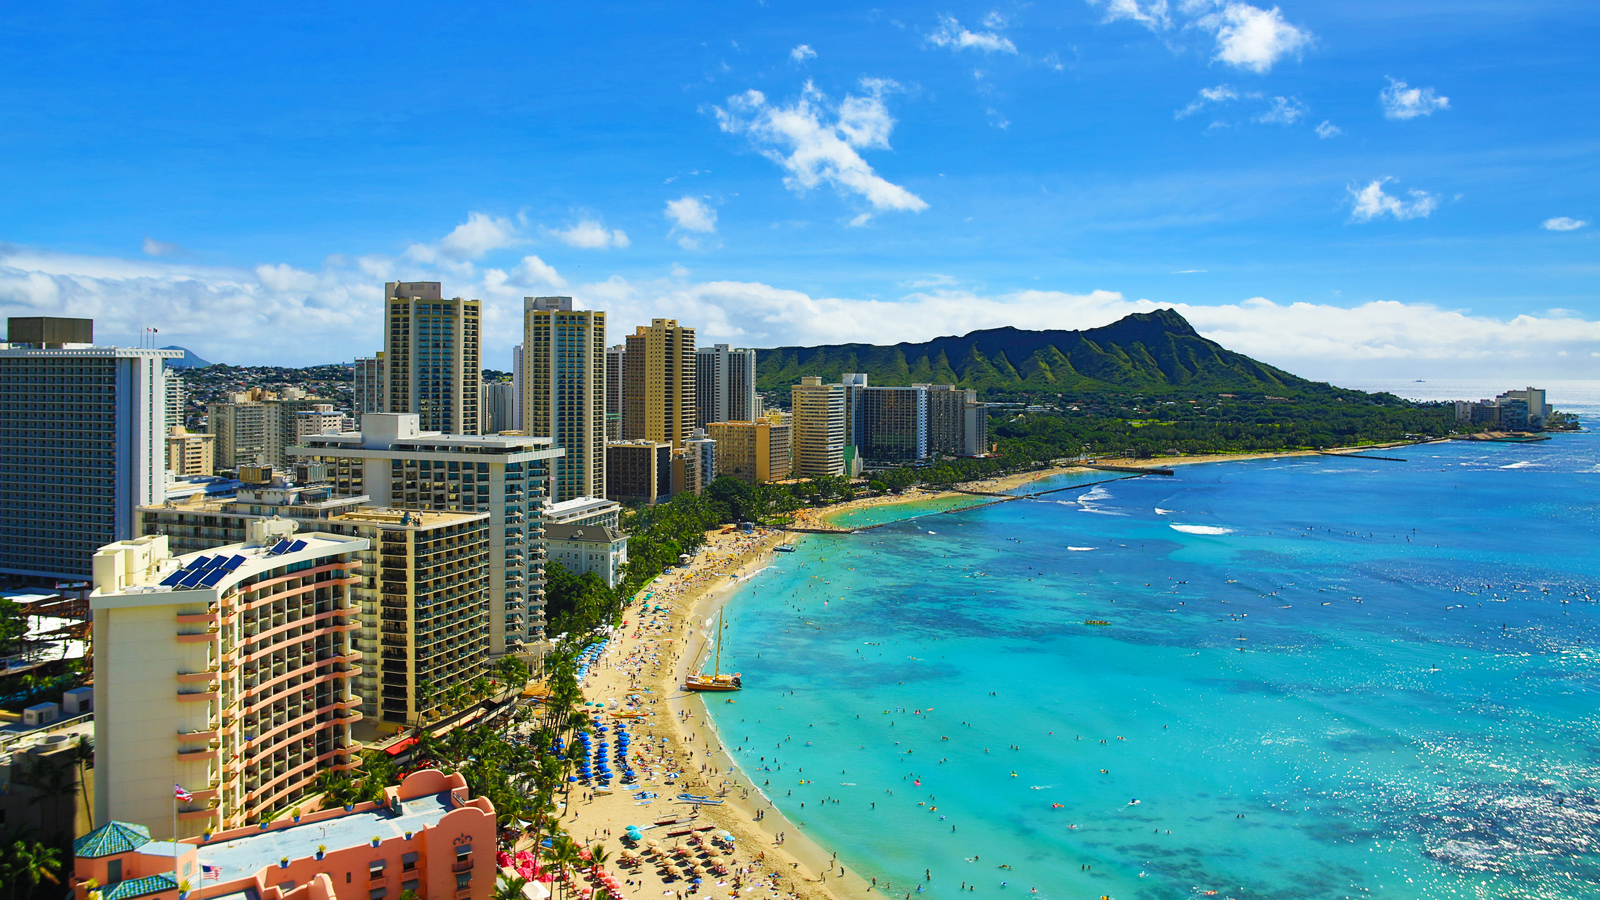 Waikiki Beach Is Famous For Its Turquoise Waters Great Surfing And Even Better Watching